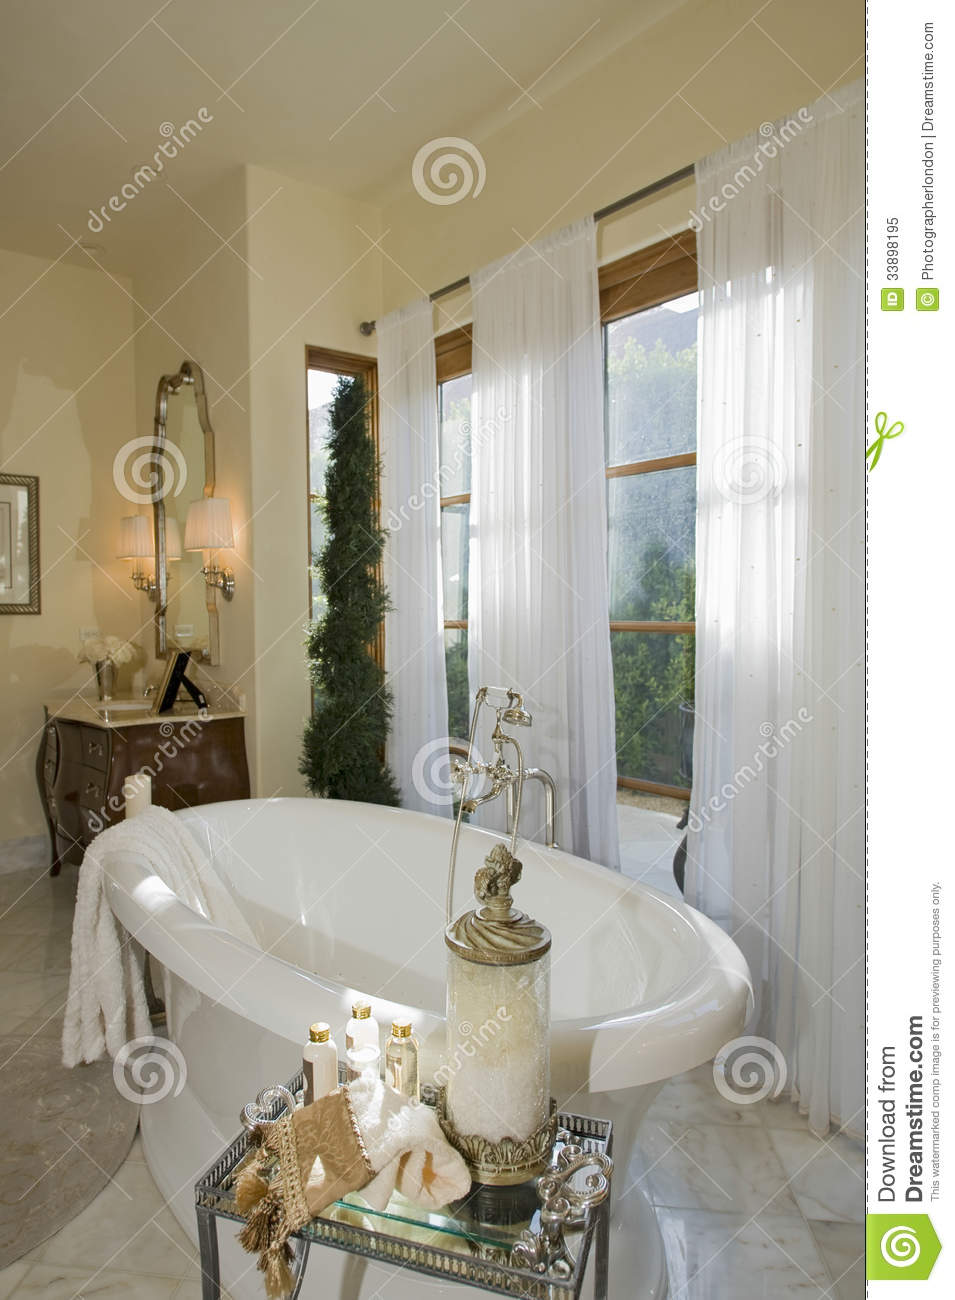 Bathroom With Toiletries Royalty Free Stock Photo Image 33898195